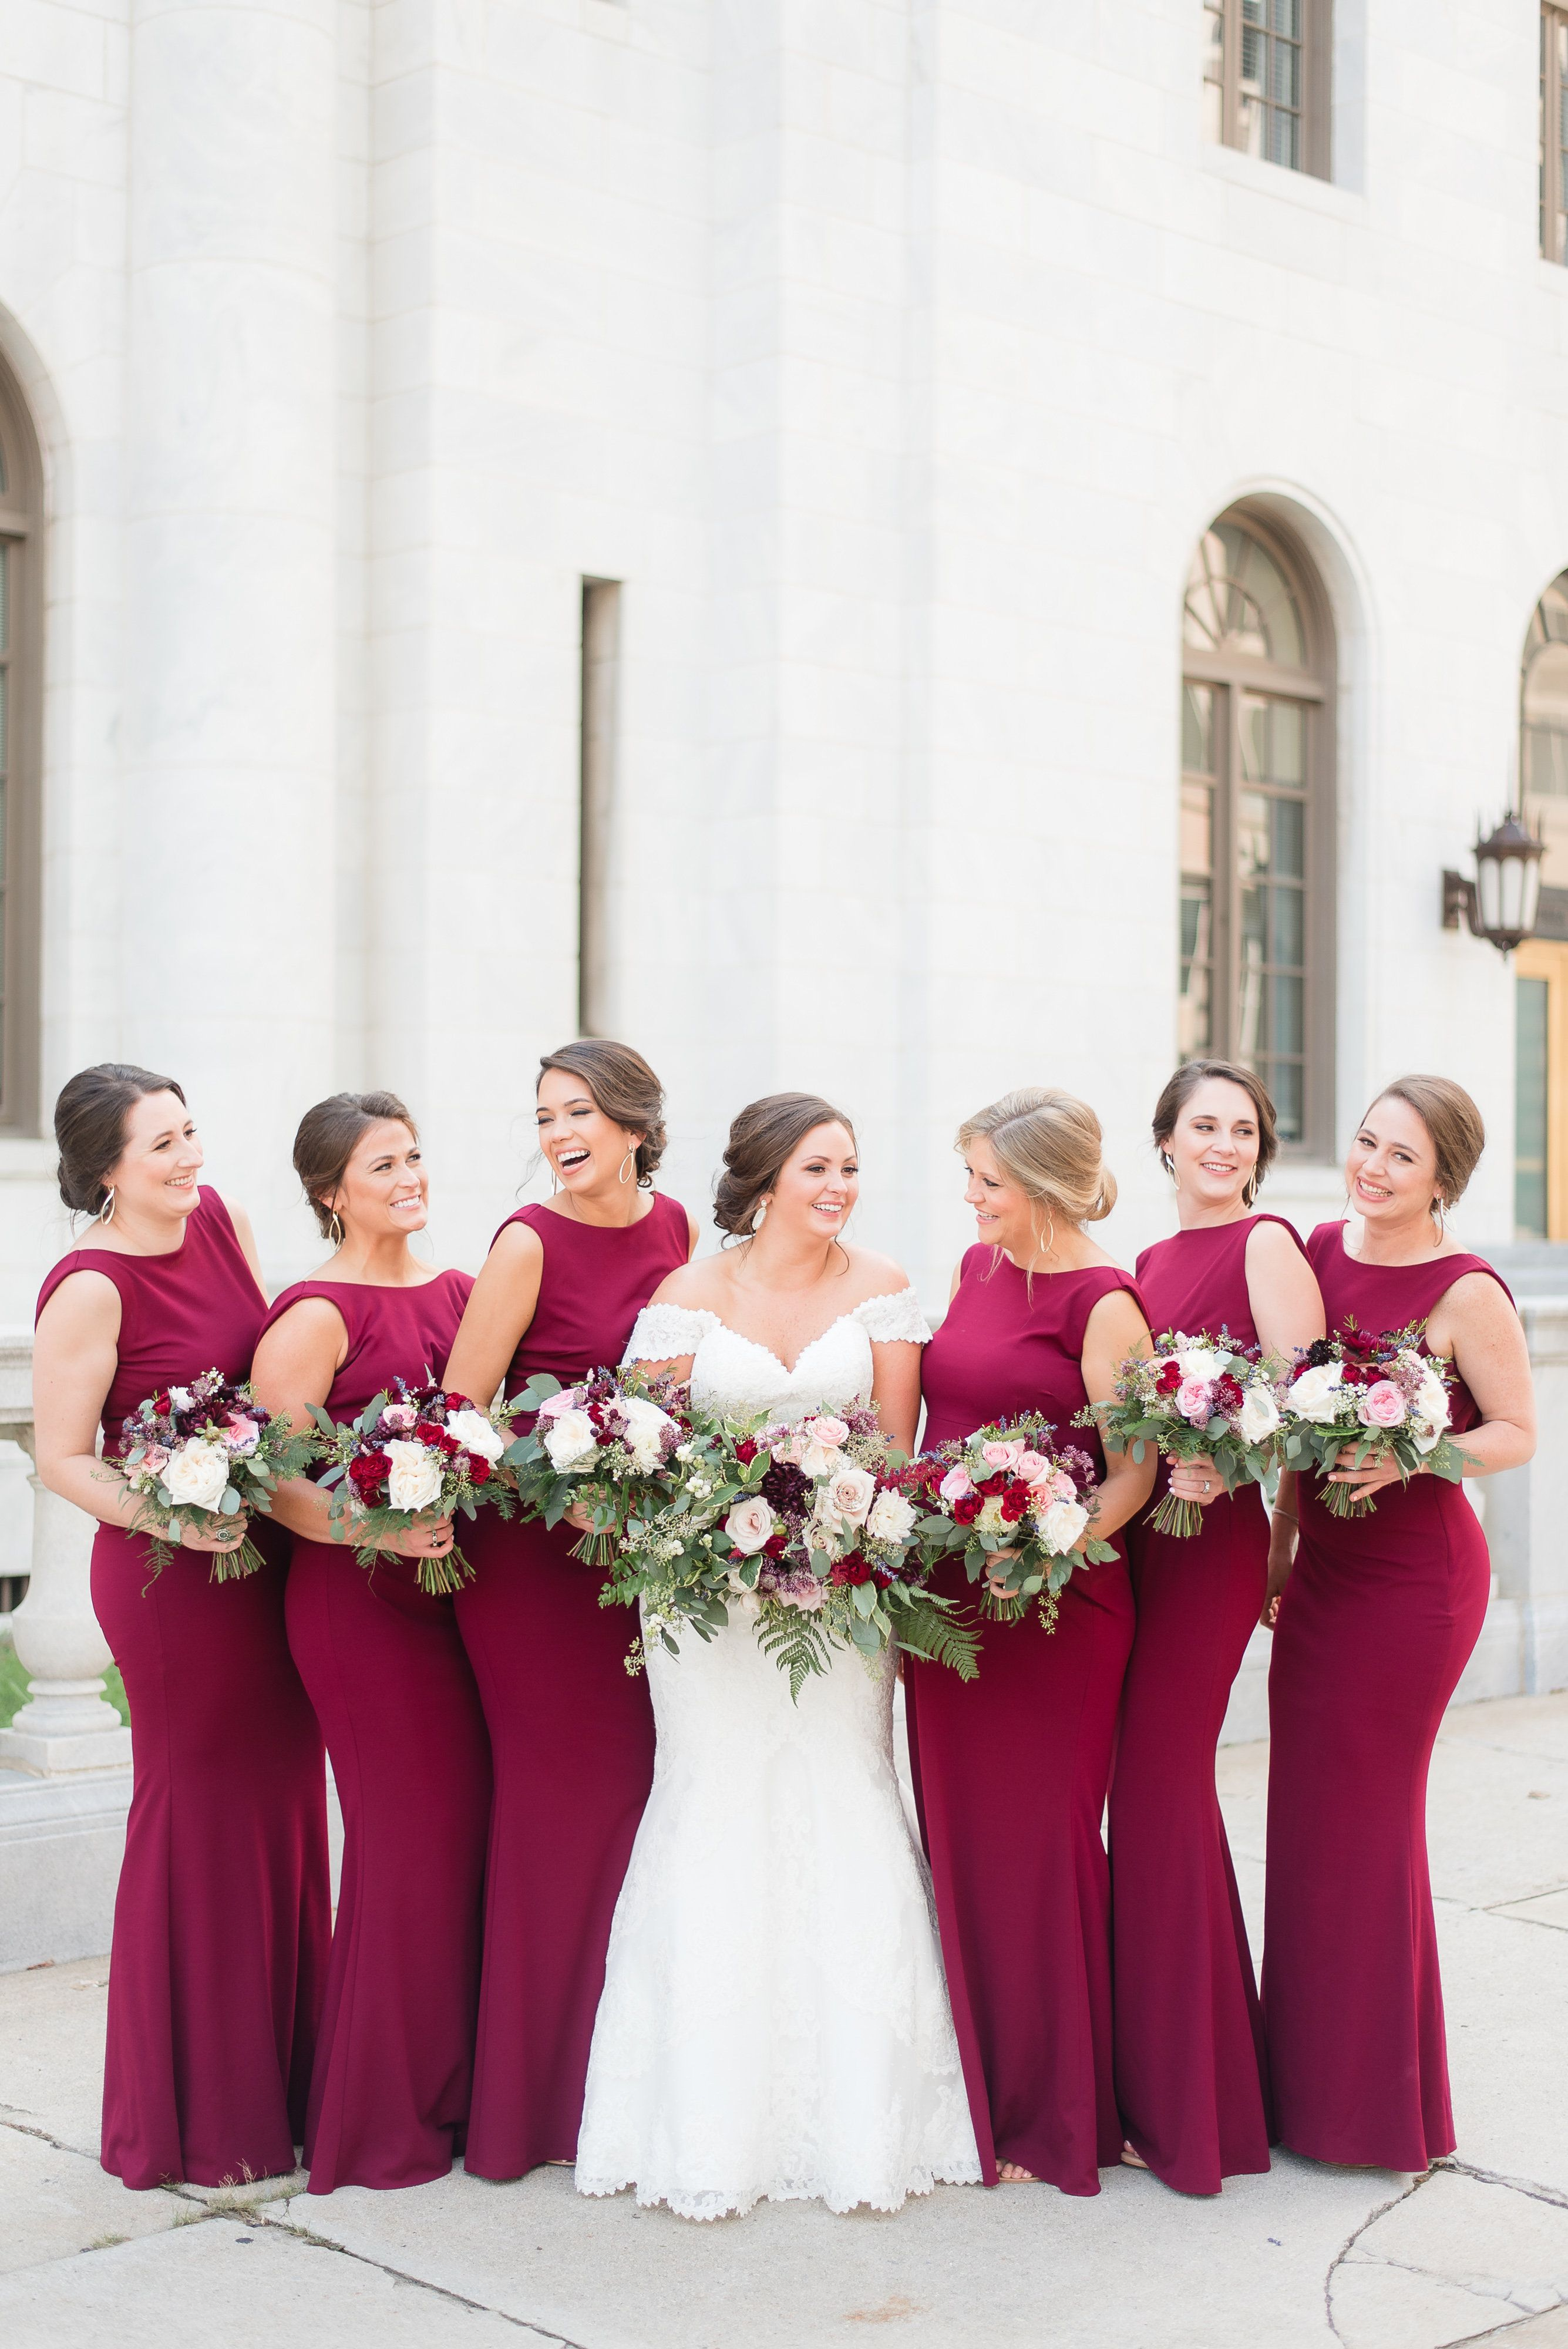 Bridesmaid bouquet red white pink bouquet red bridesmaids bridesmaid bouquet red white pink bouquet red bridesmaids dresses burgundy and gold wedding ombrellifo Gallery